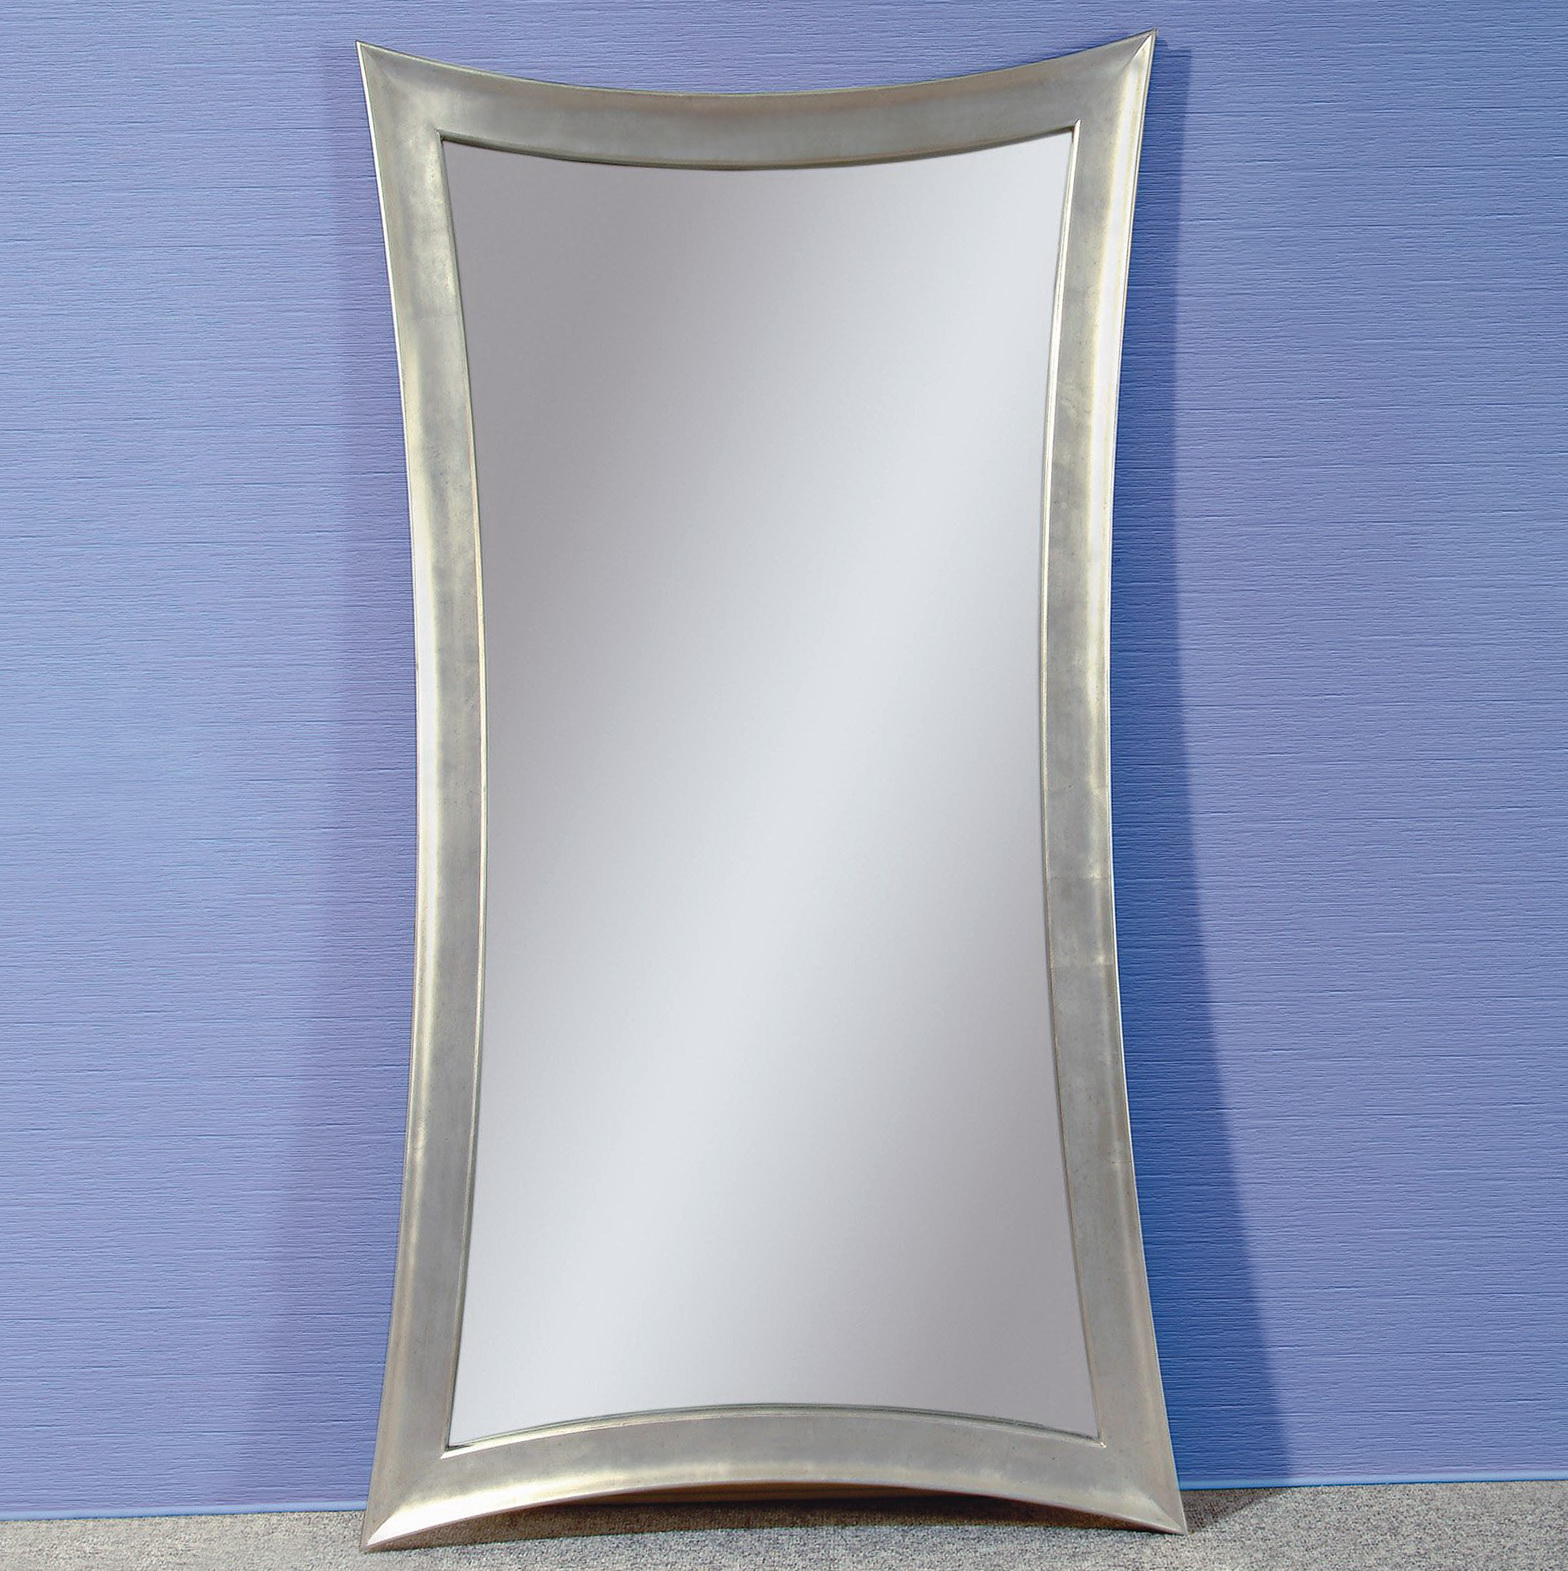 Large Floor Mirrors Leaning